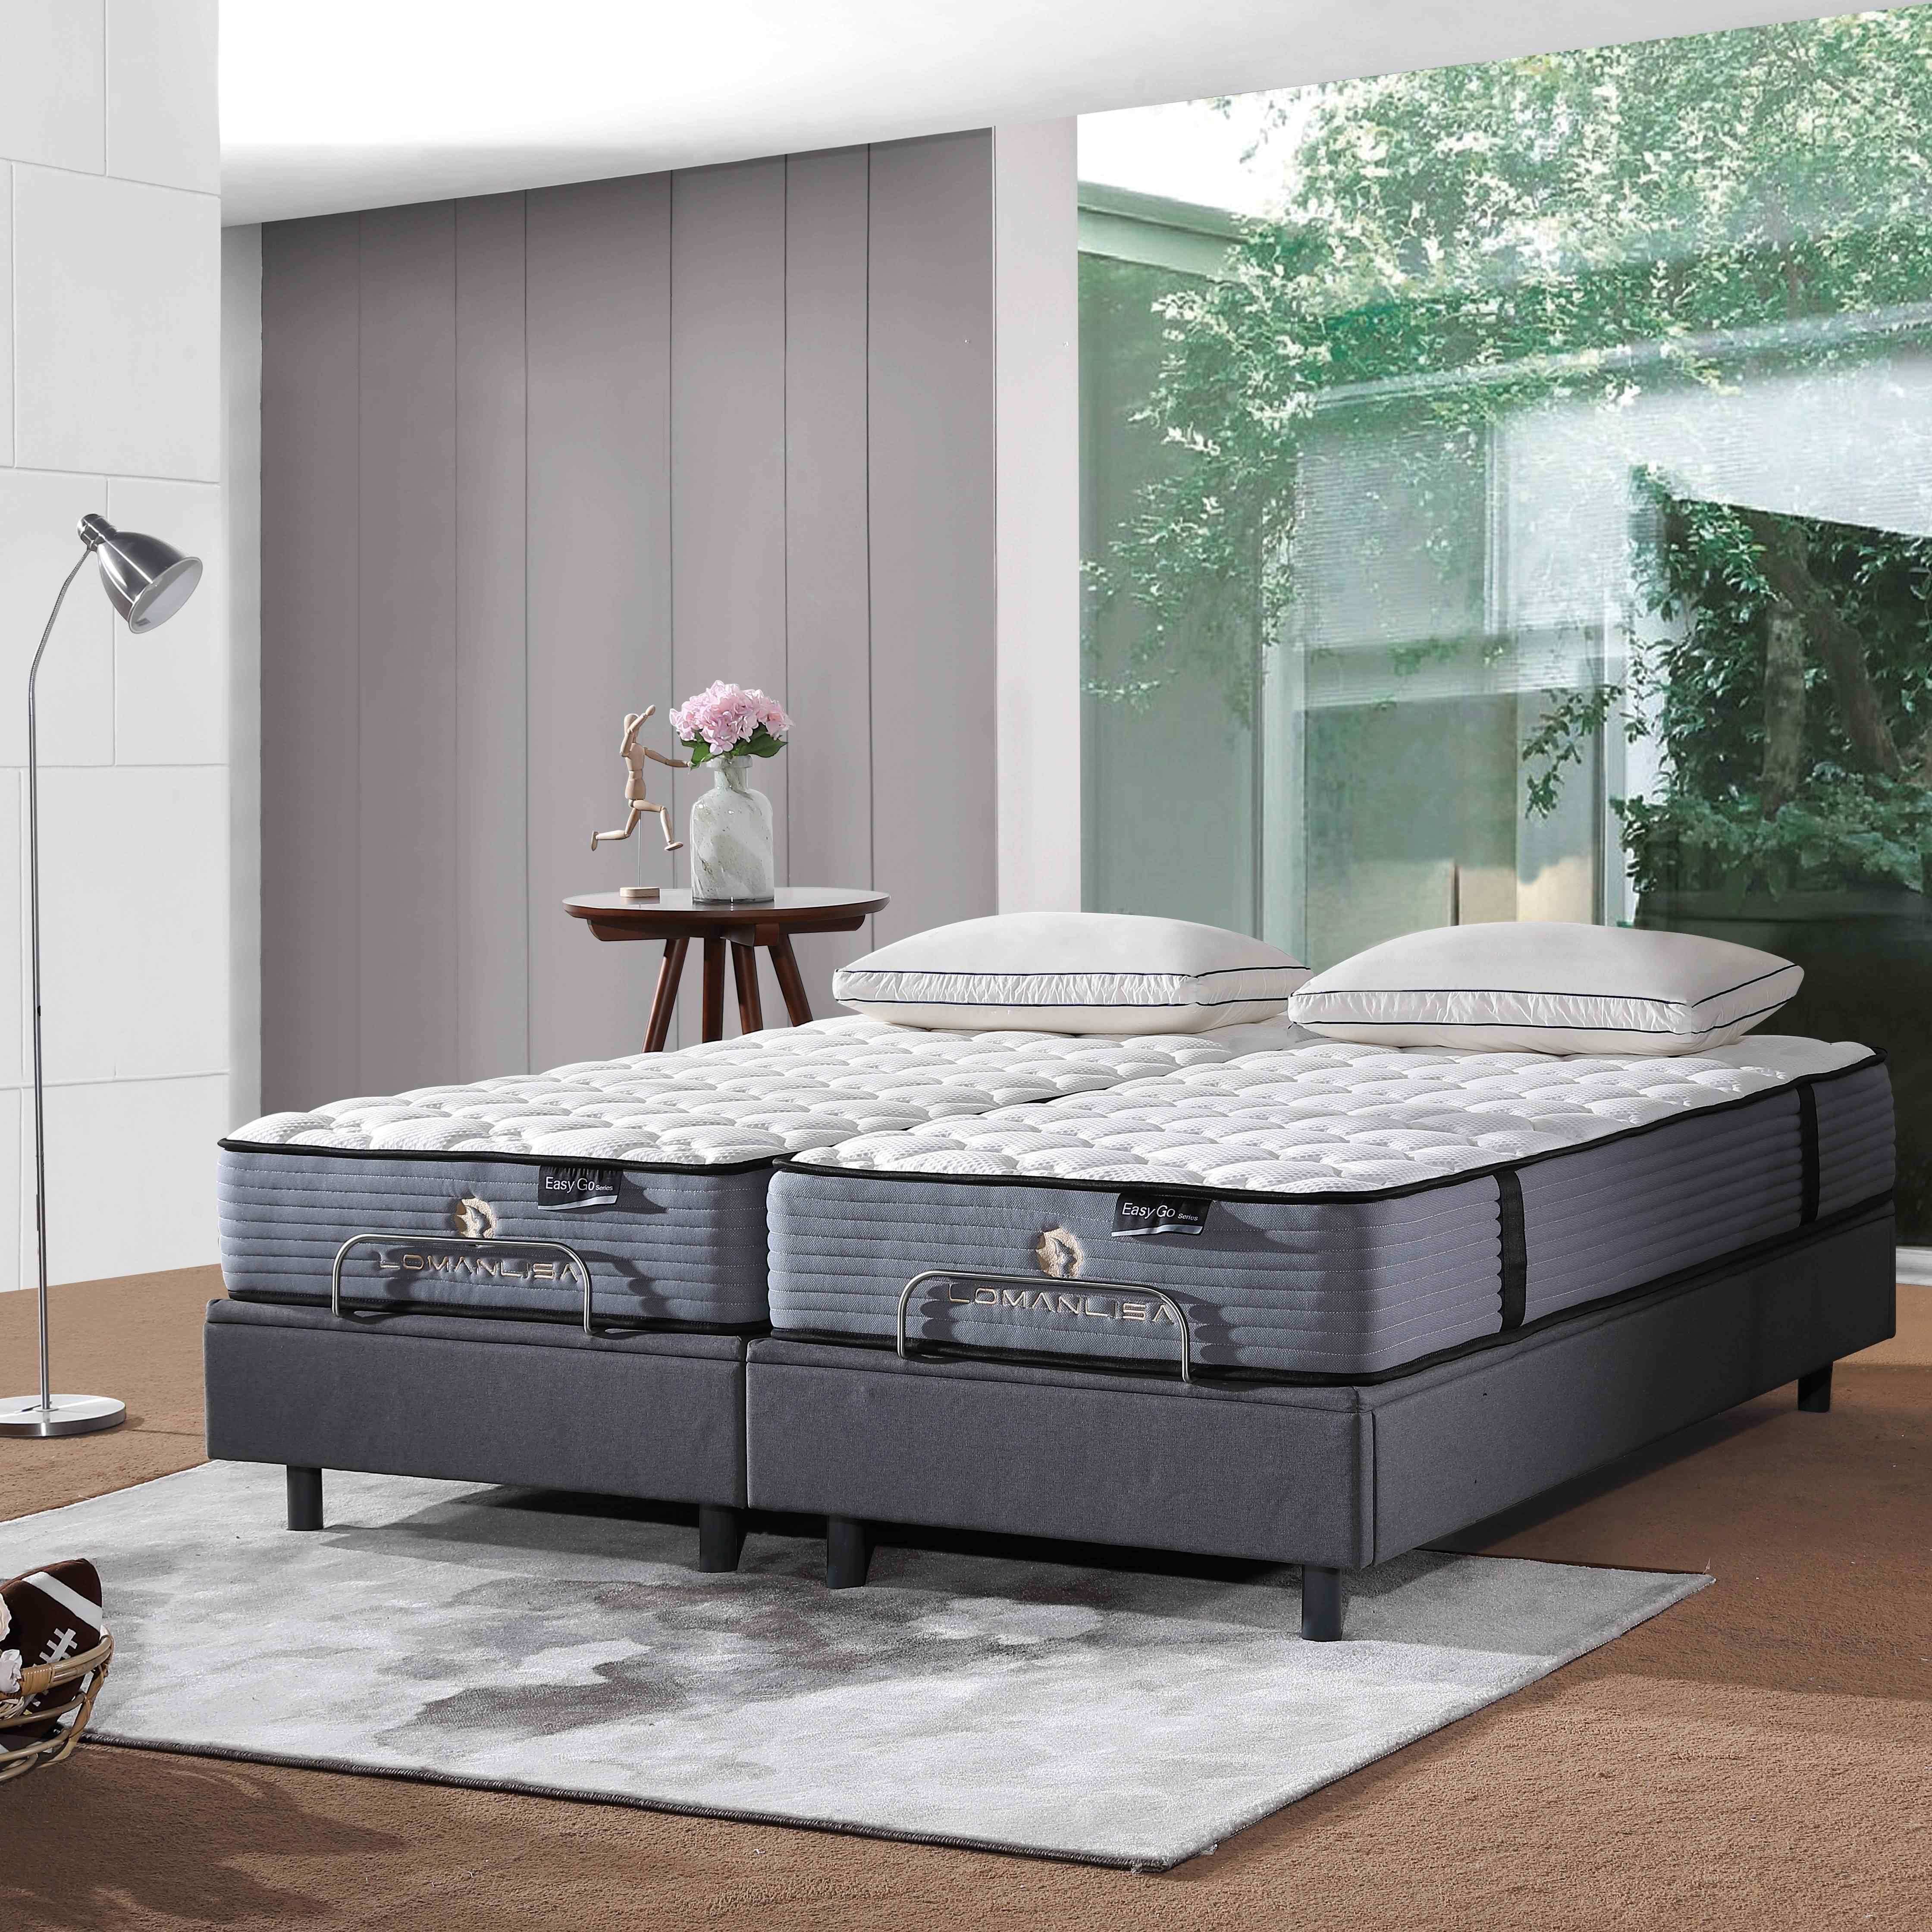 JLH 2018 Hand Tufted Double Spring Latex Mattresses China with High Quality Ice Silk Fabric image2